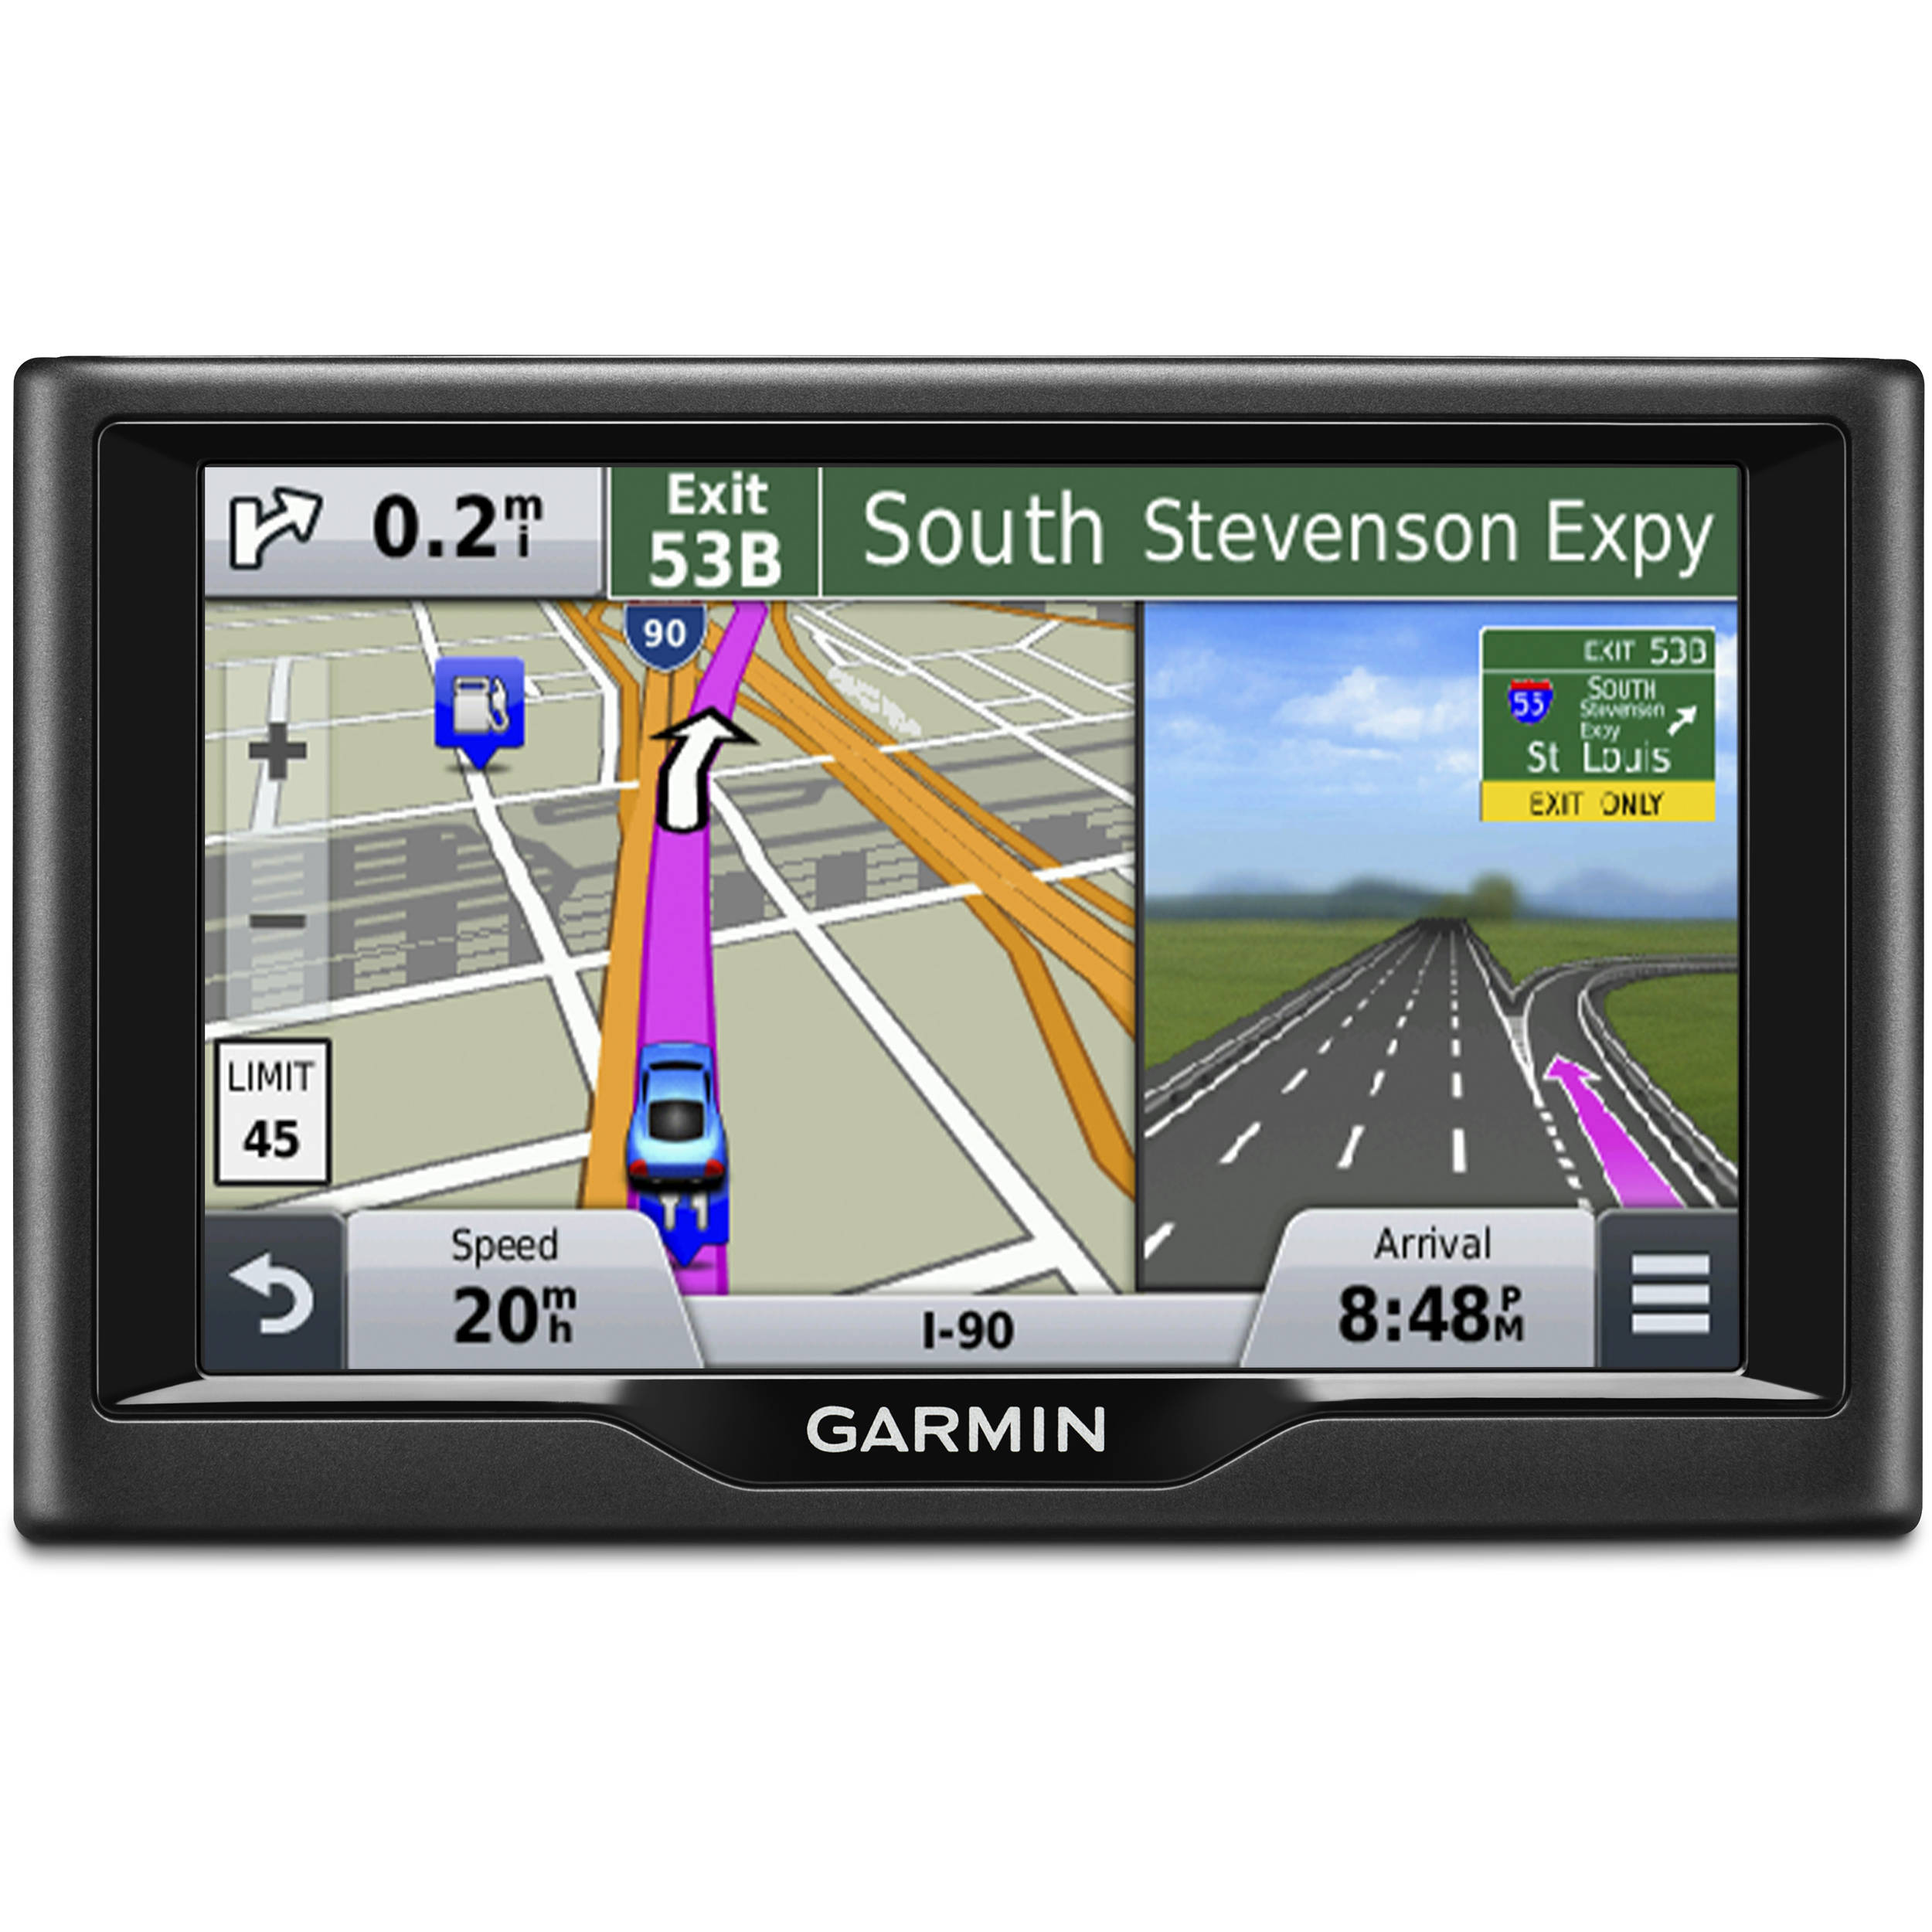 garmin lifetime map updates free with Garmin 010 01400 01 Nuvi 57lm Advanced Gps on New Cobra 8000 Gps Navigation For Truck Drivers besides B01N149KS1 as well Driveassist 51lmt S Eu 5 Sat Nav Full Europe Map Dash Cam Case Universal Sat Nav Case For 5 6 Garmin N Vi Sat Navs B0440163 Pdt further Product likewise 111182283015.